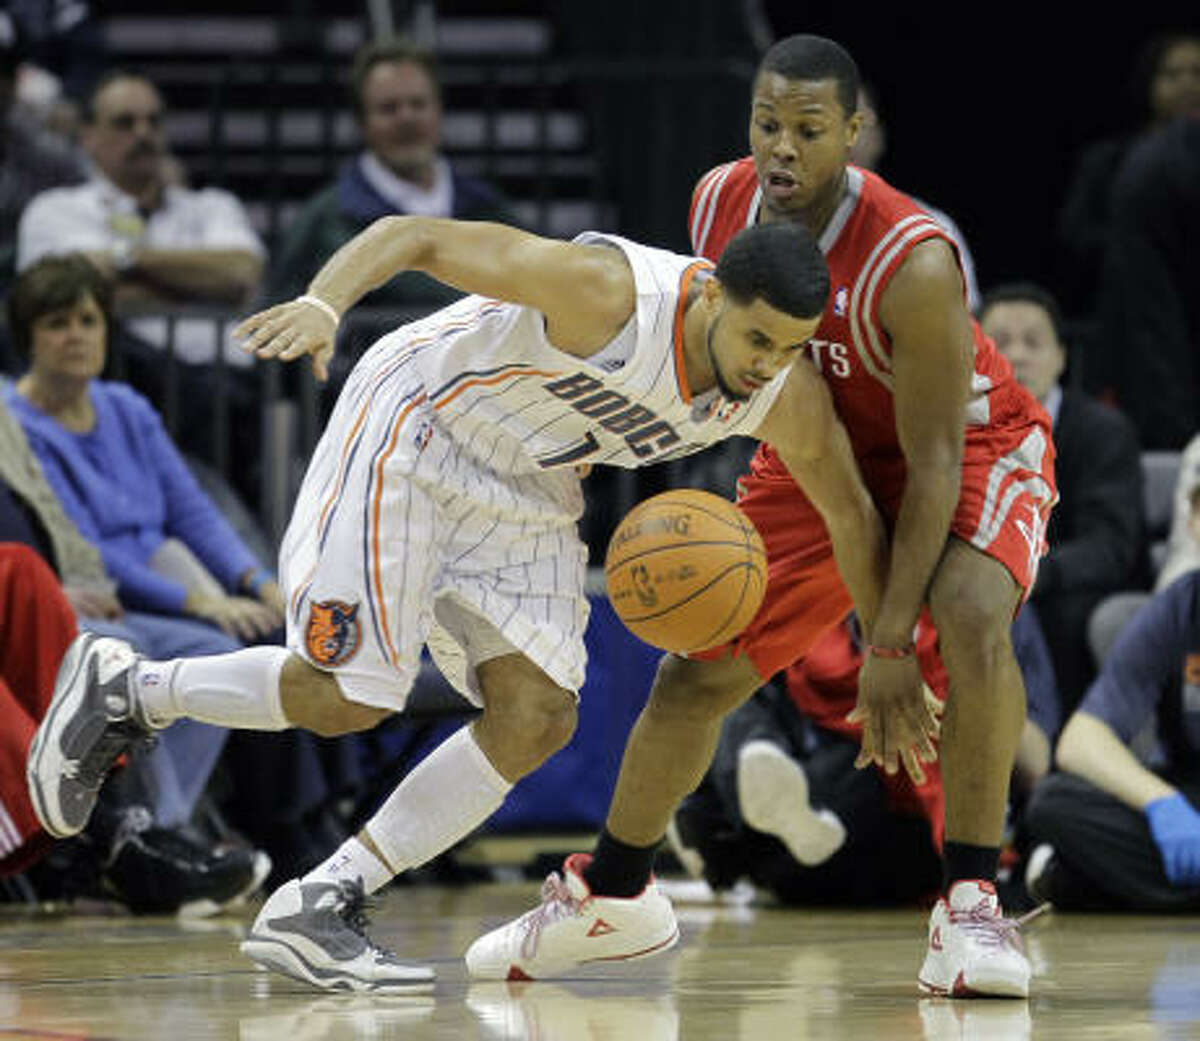 Bobcats guard D.J. Augustin, left, and Rockets guard Kyle Lowry, right, chase a loose ball.